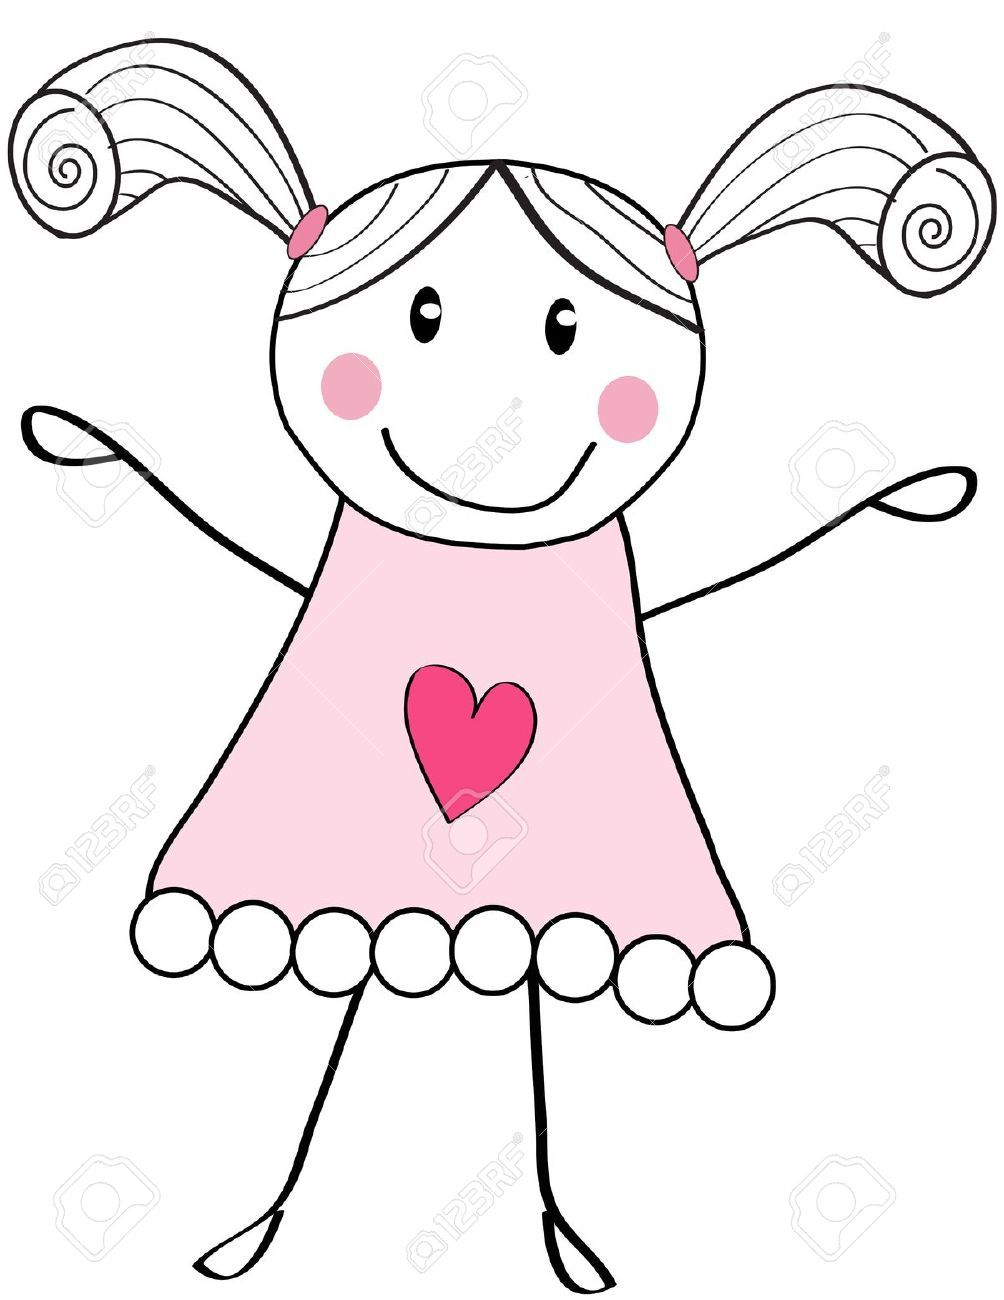 Image Result For Cute Little Girl Sketches Crafts